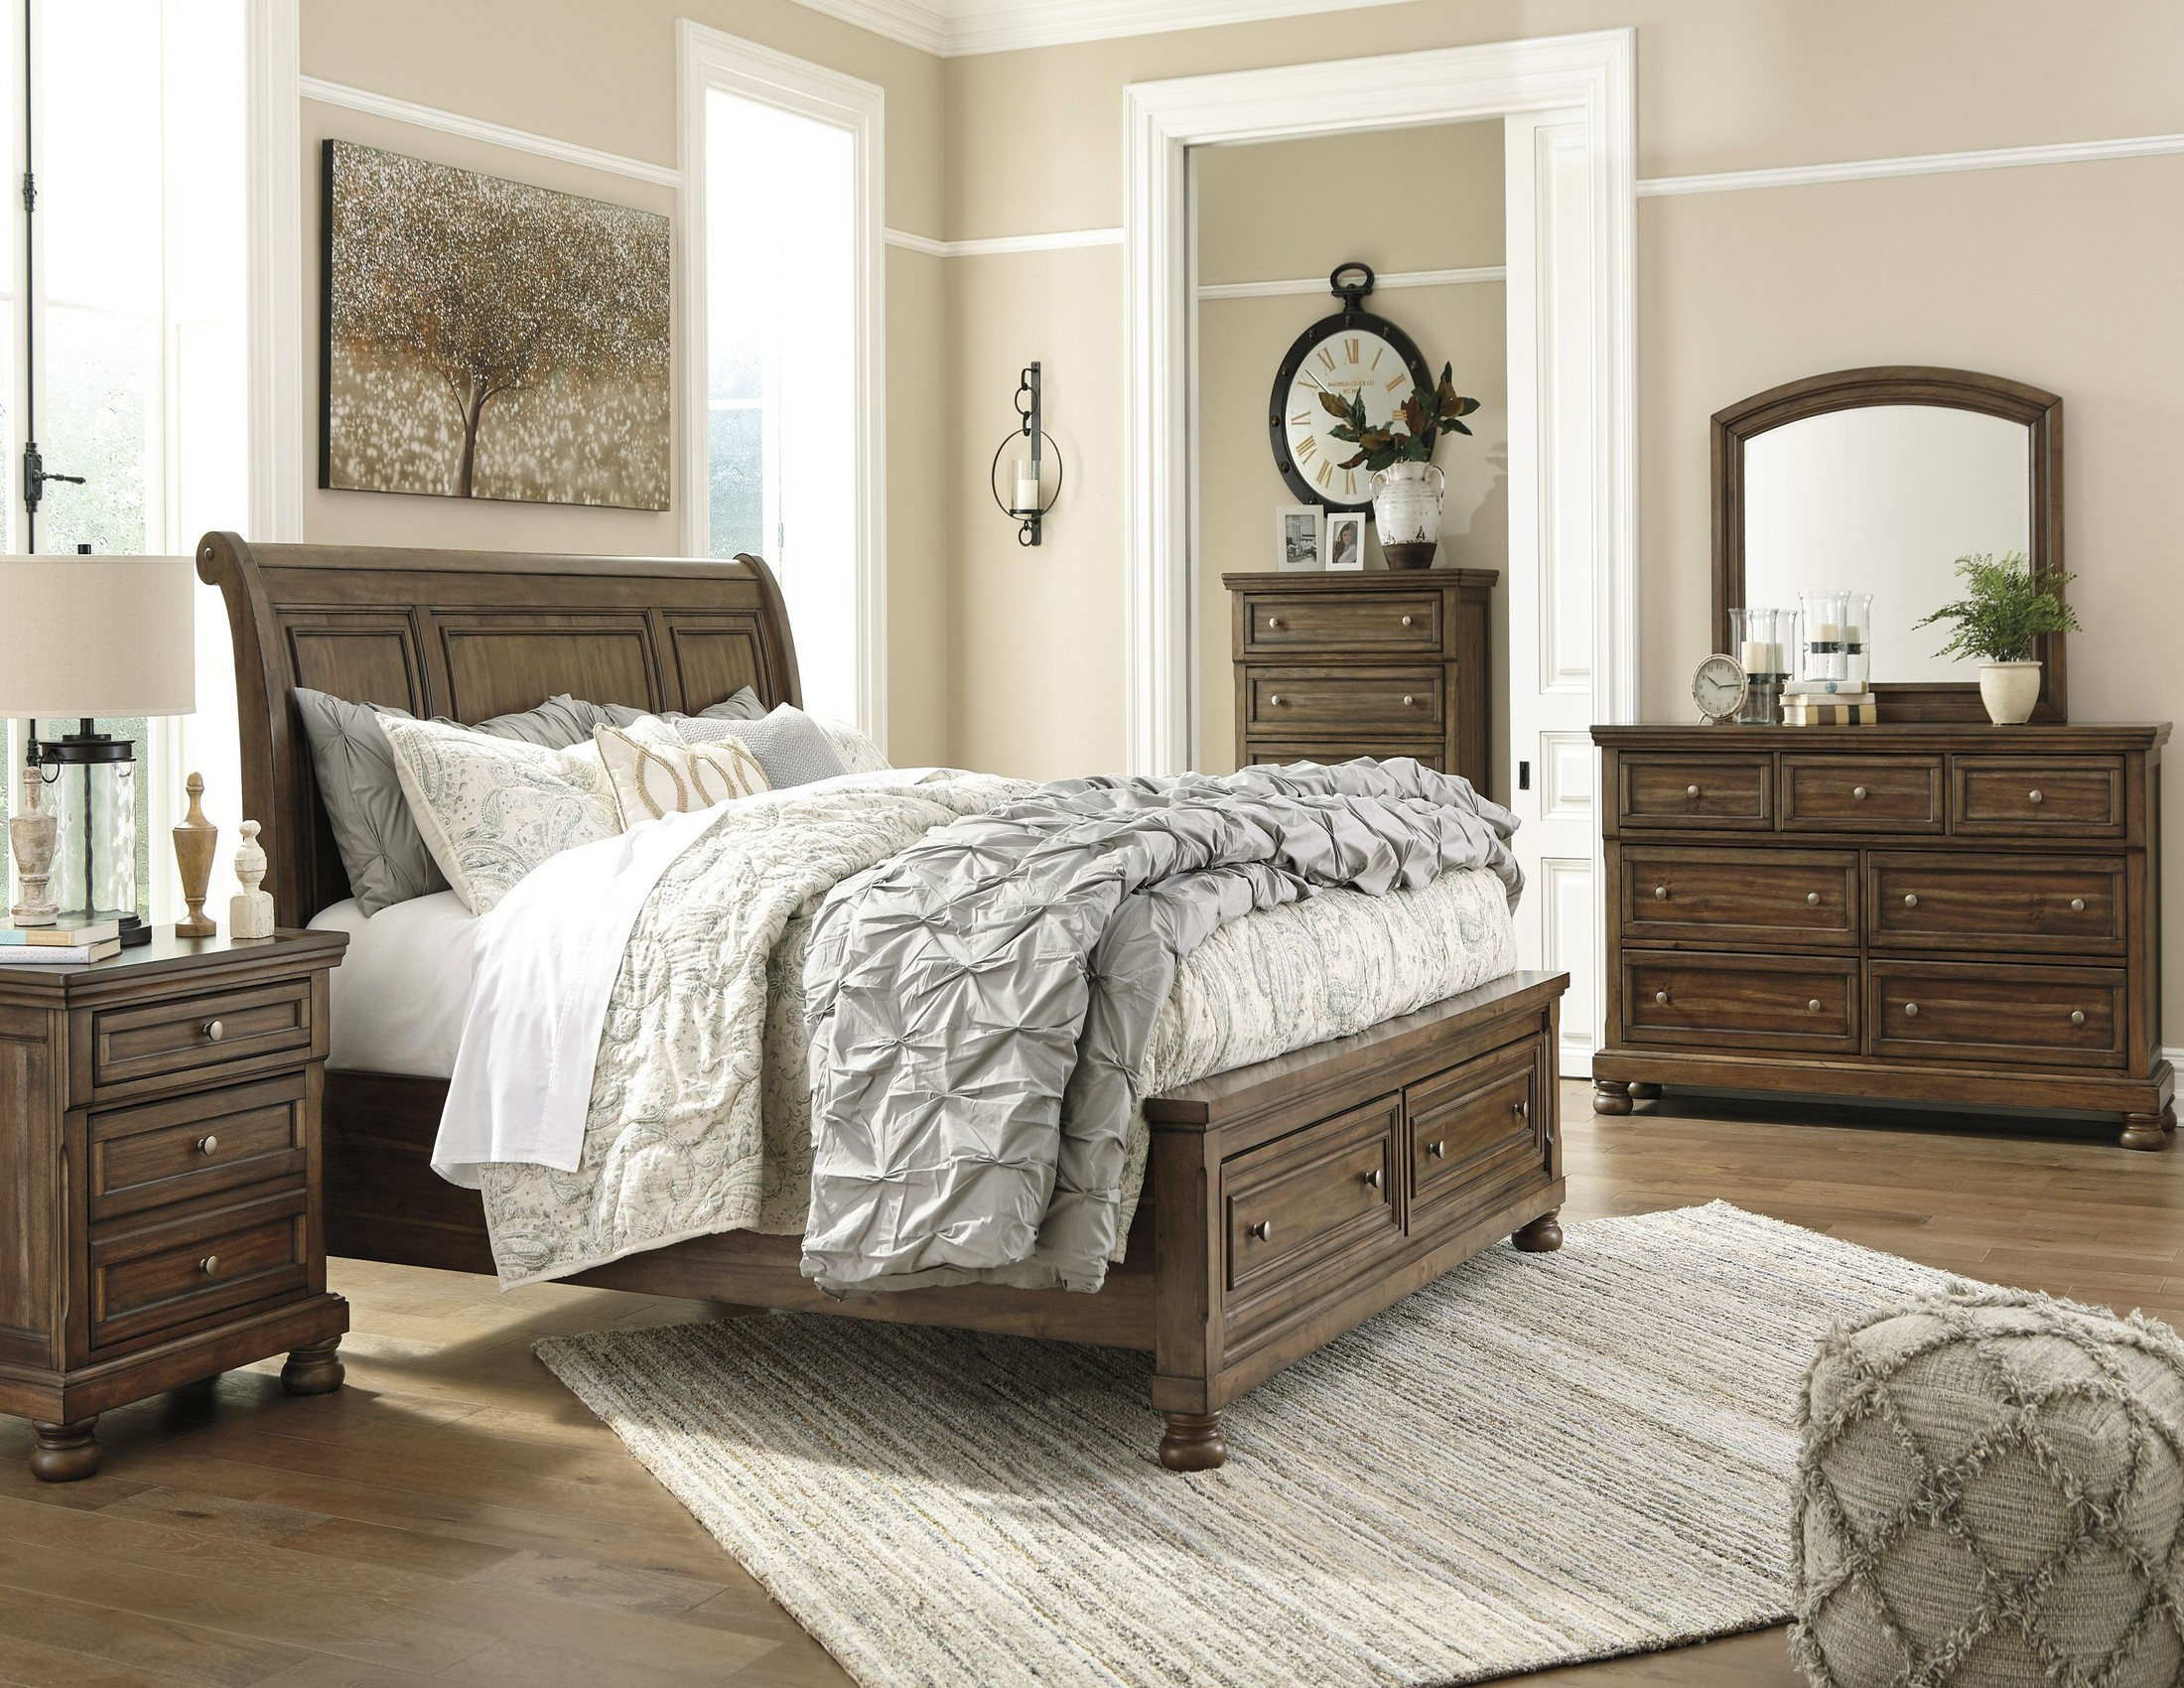 Incredible Flynnter Porter Medium Brown Sleigh Storage Bedroom Set Home Interior And Landscaping Spoatsignezvosmurscom